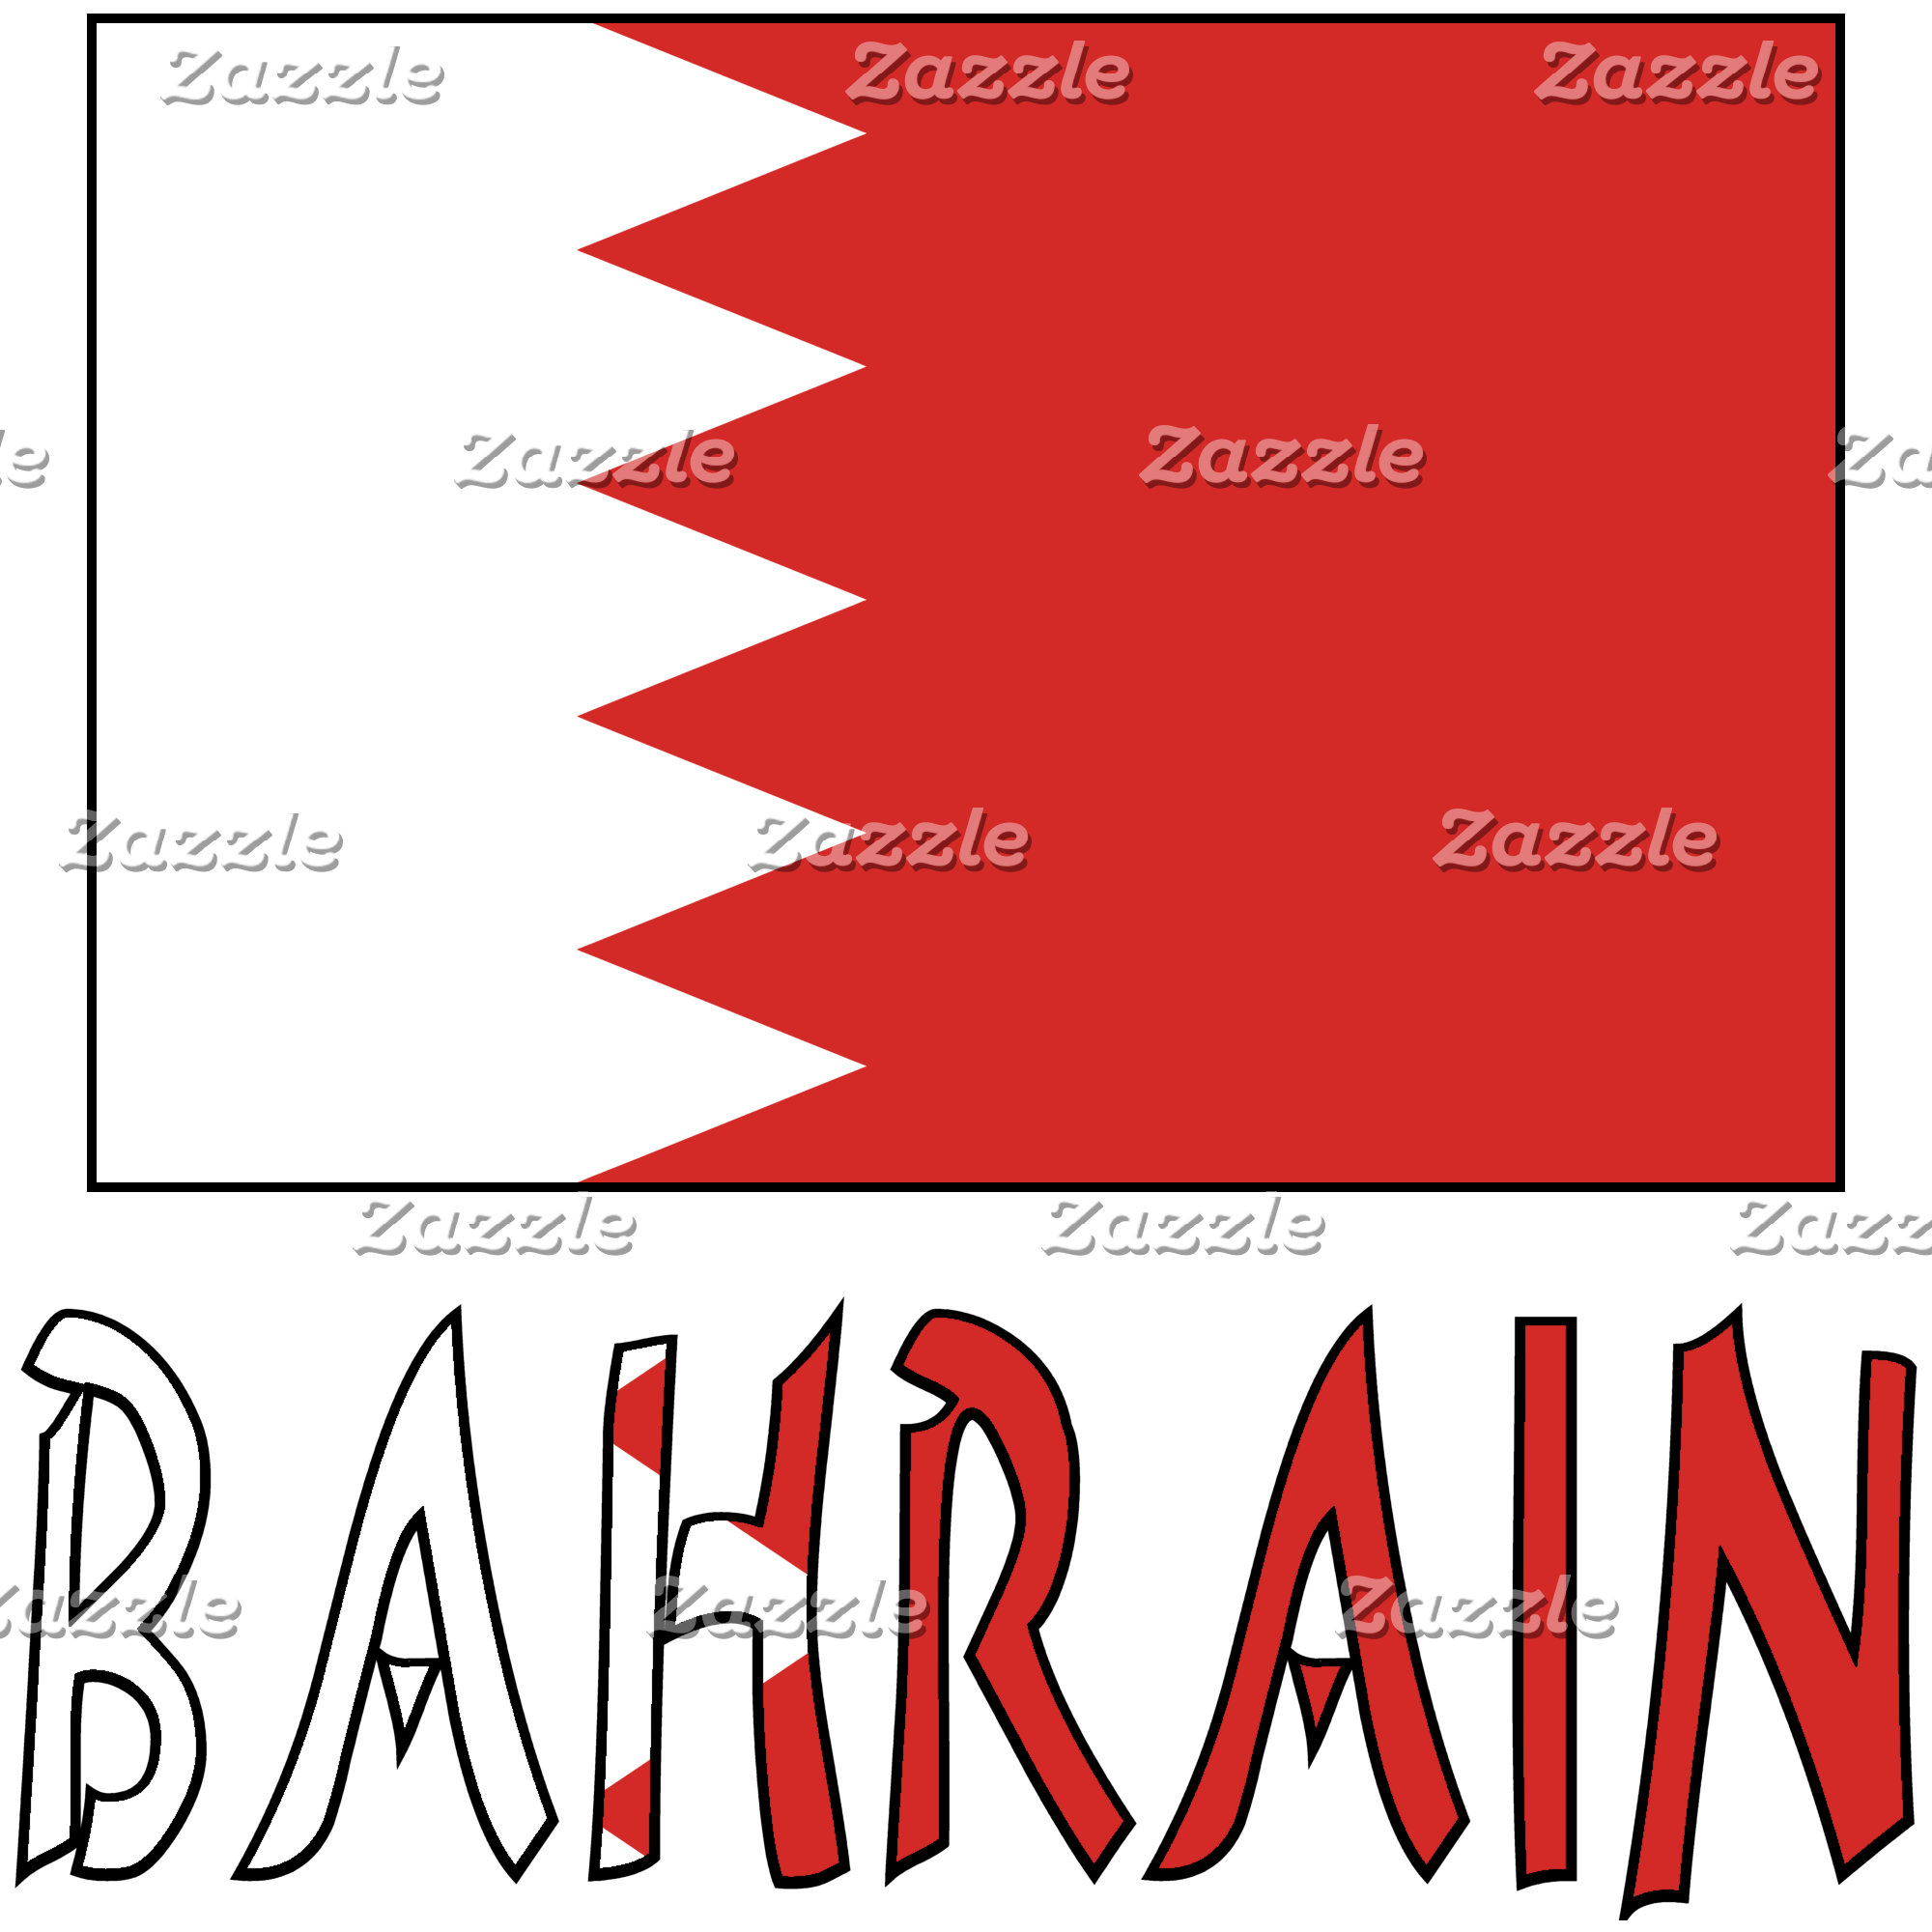 Bahraini Flag and Bahrain